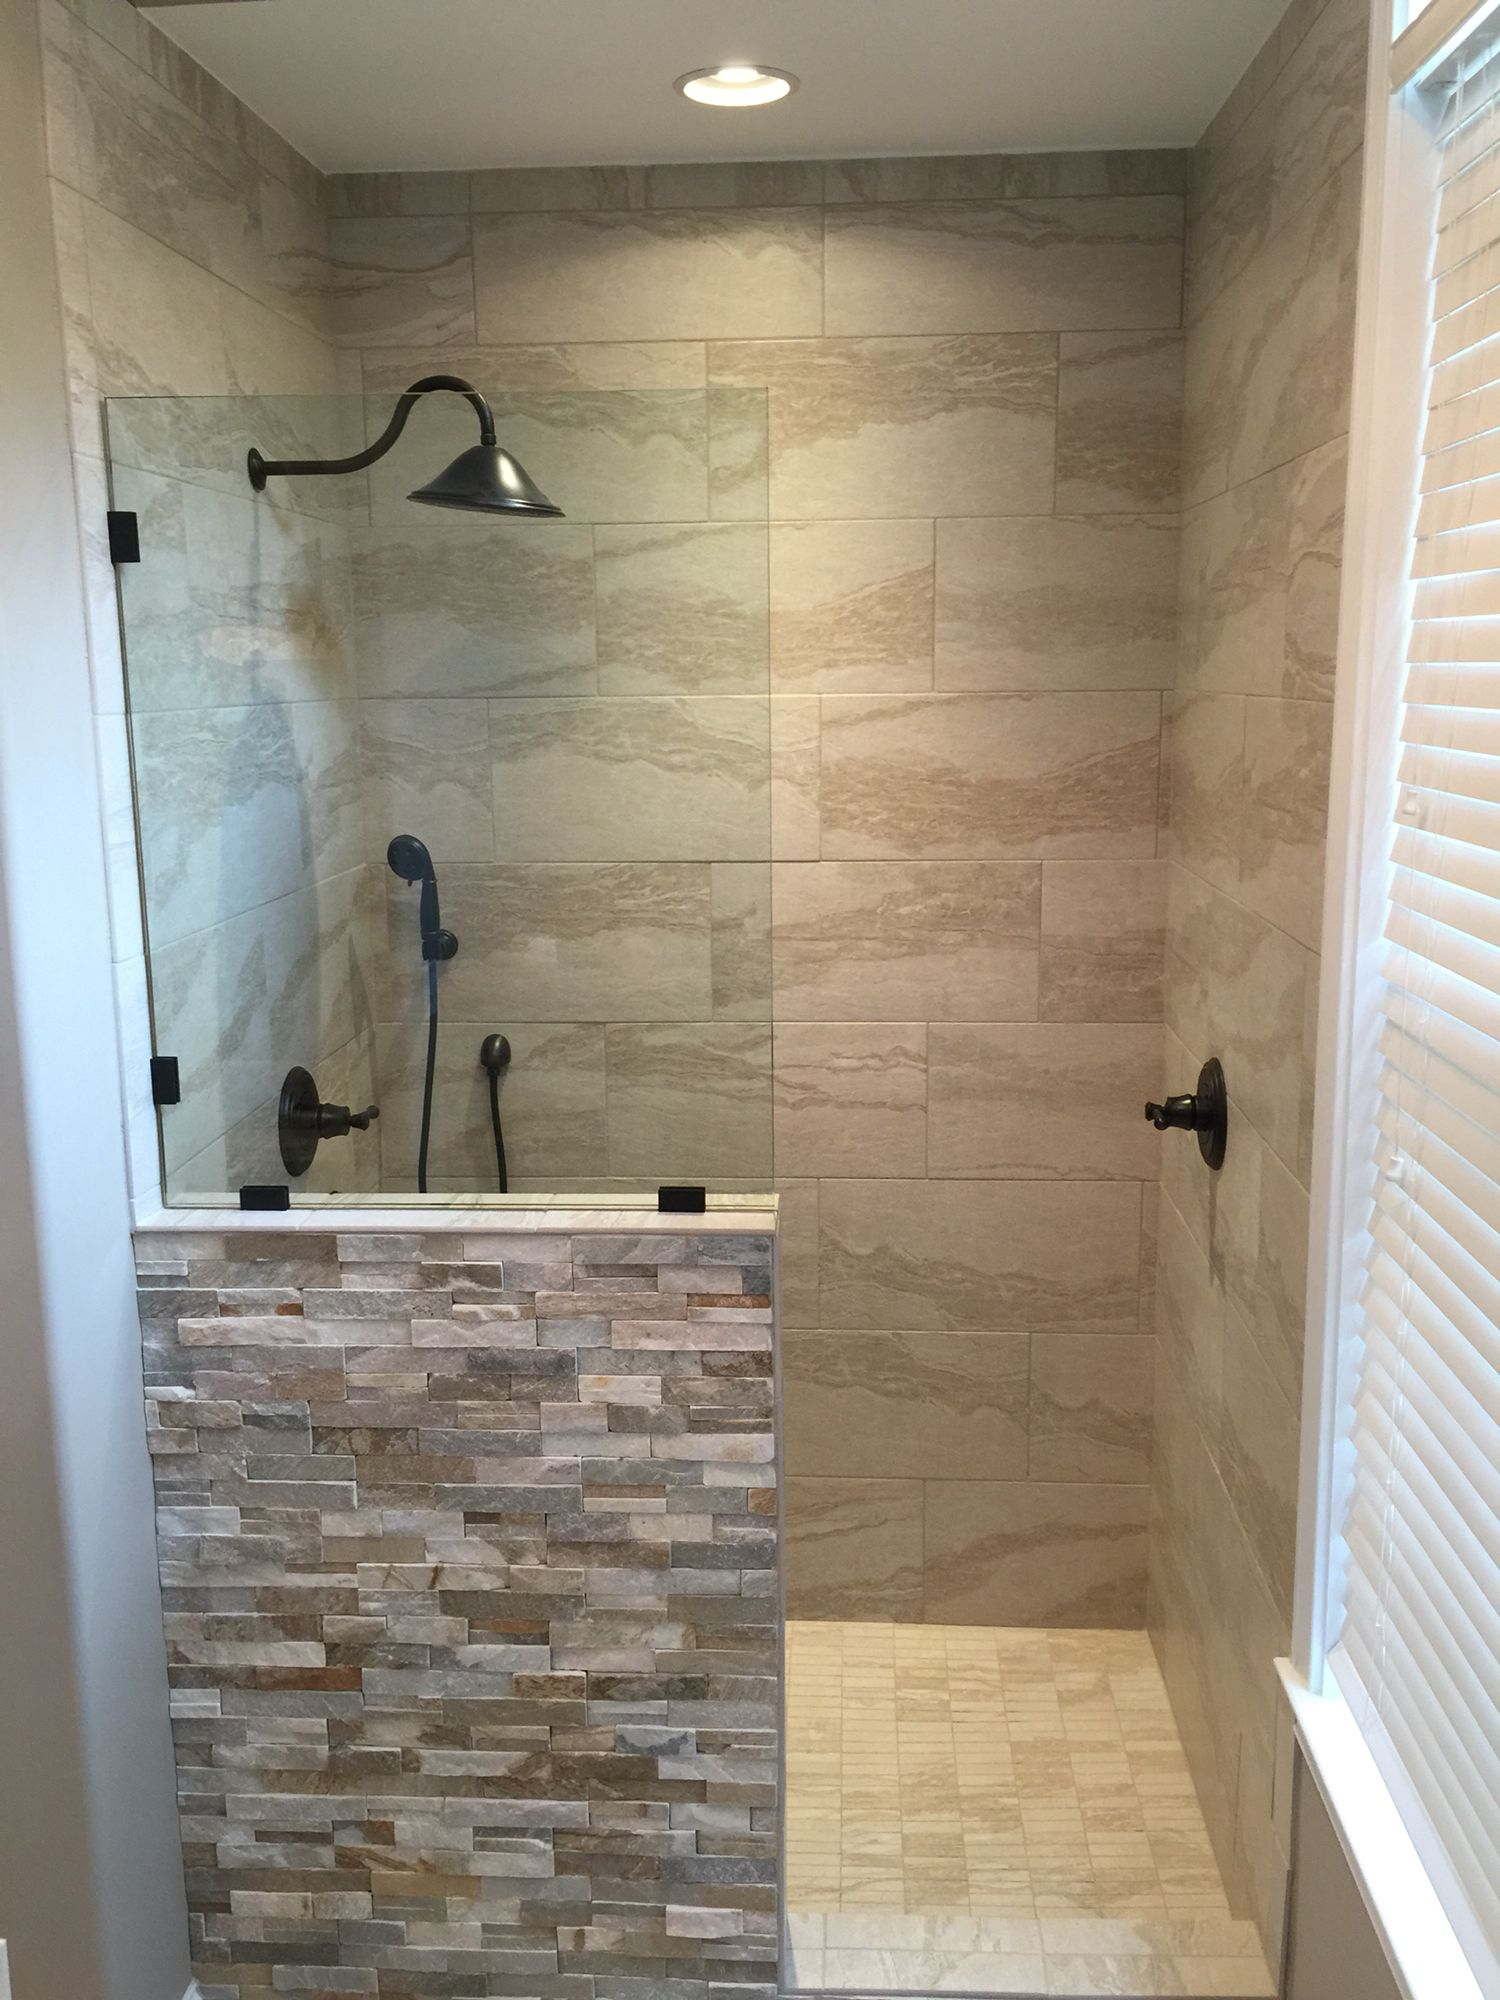 Remodeling Bathroom Tile Walls new shower replaced the old jacuzzi tub | my bathroom | pinterest